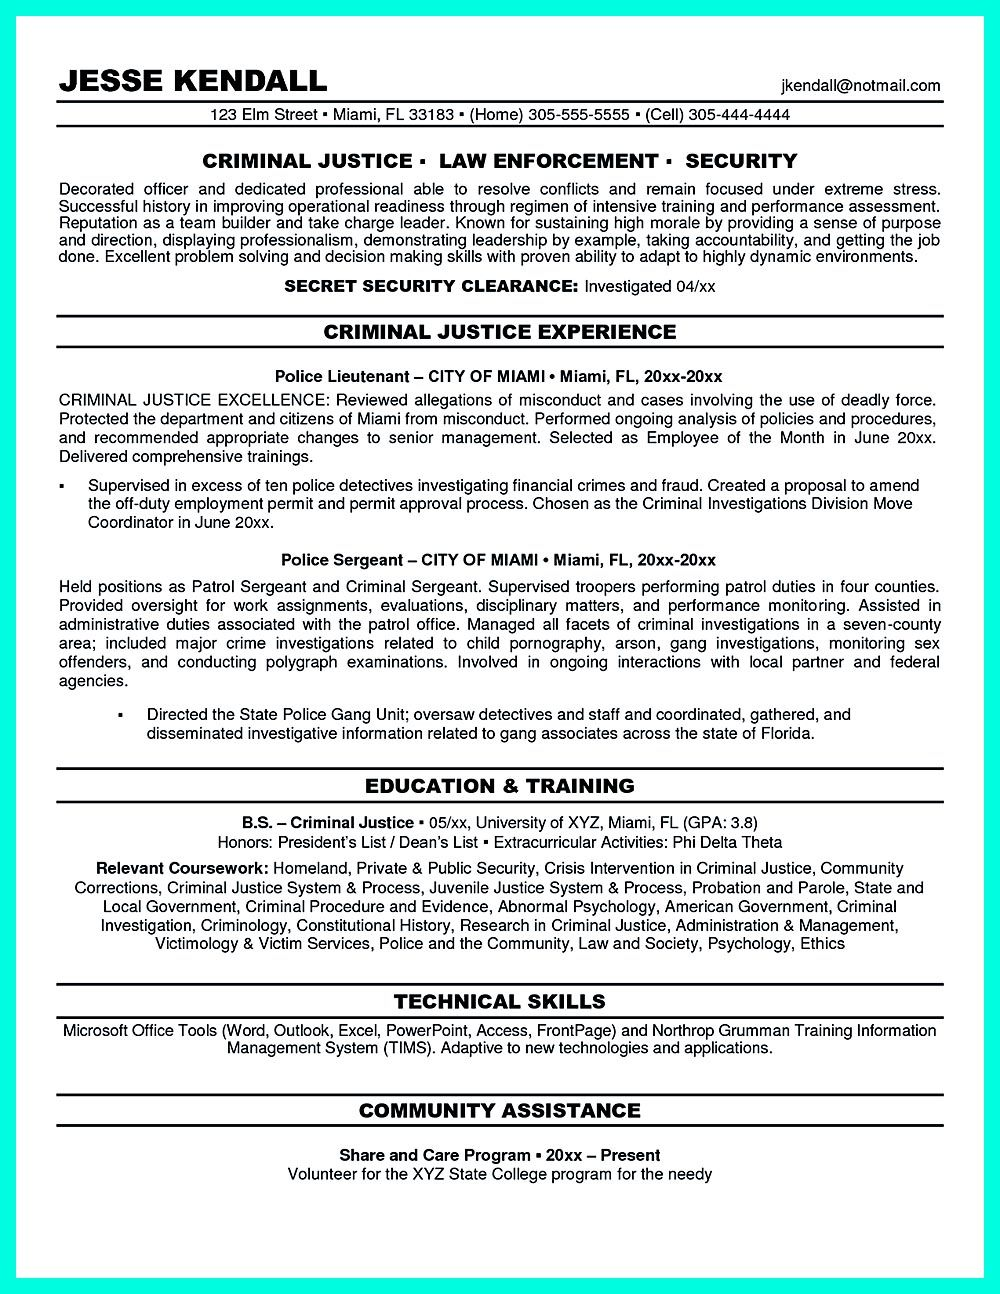 Pin on Resume Sample Template And Format | Pinterest | Resume skills ...